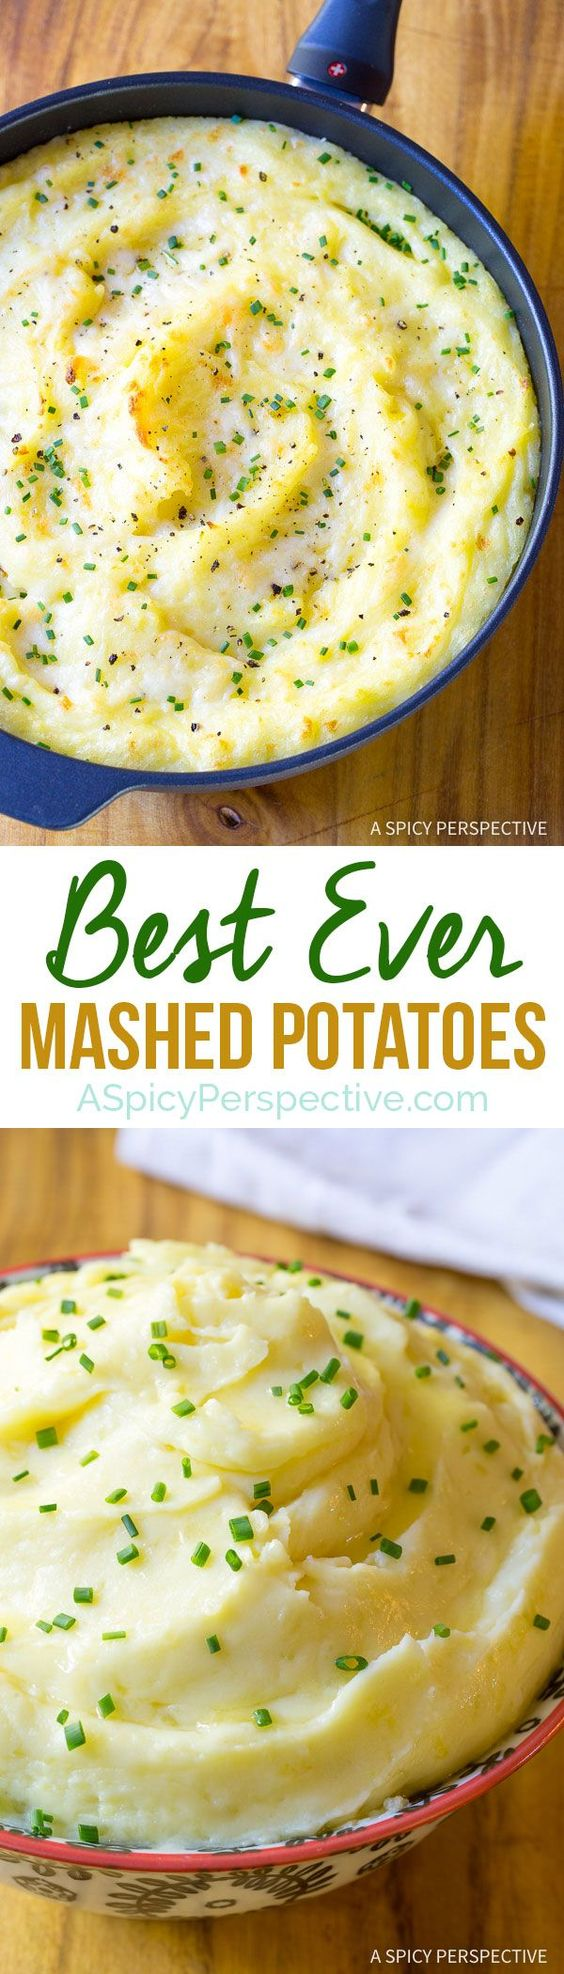 Our Very Best Mashed Potatoes Recipe on ASpicyPerspective.com